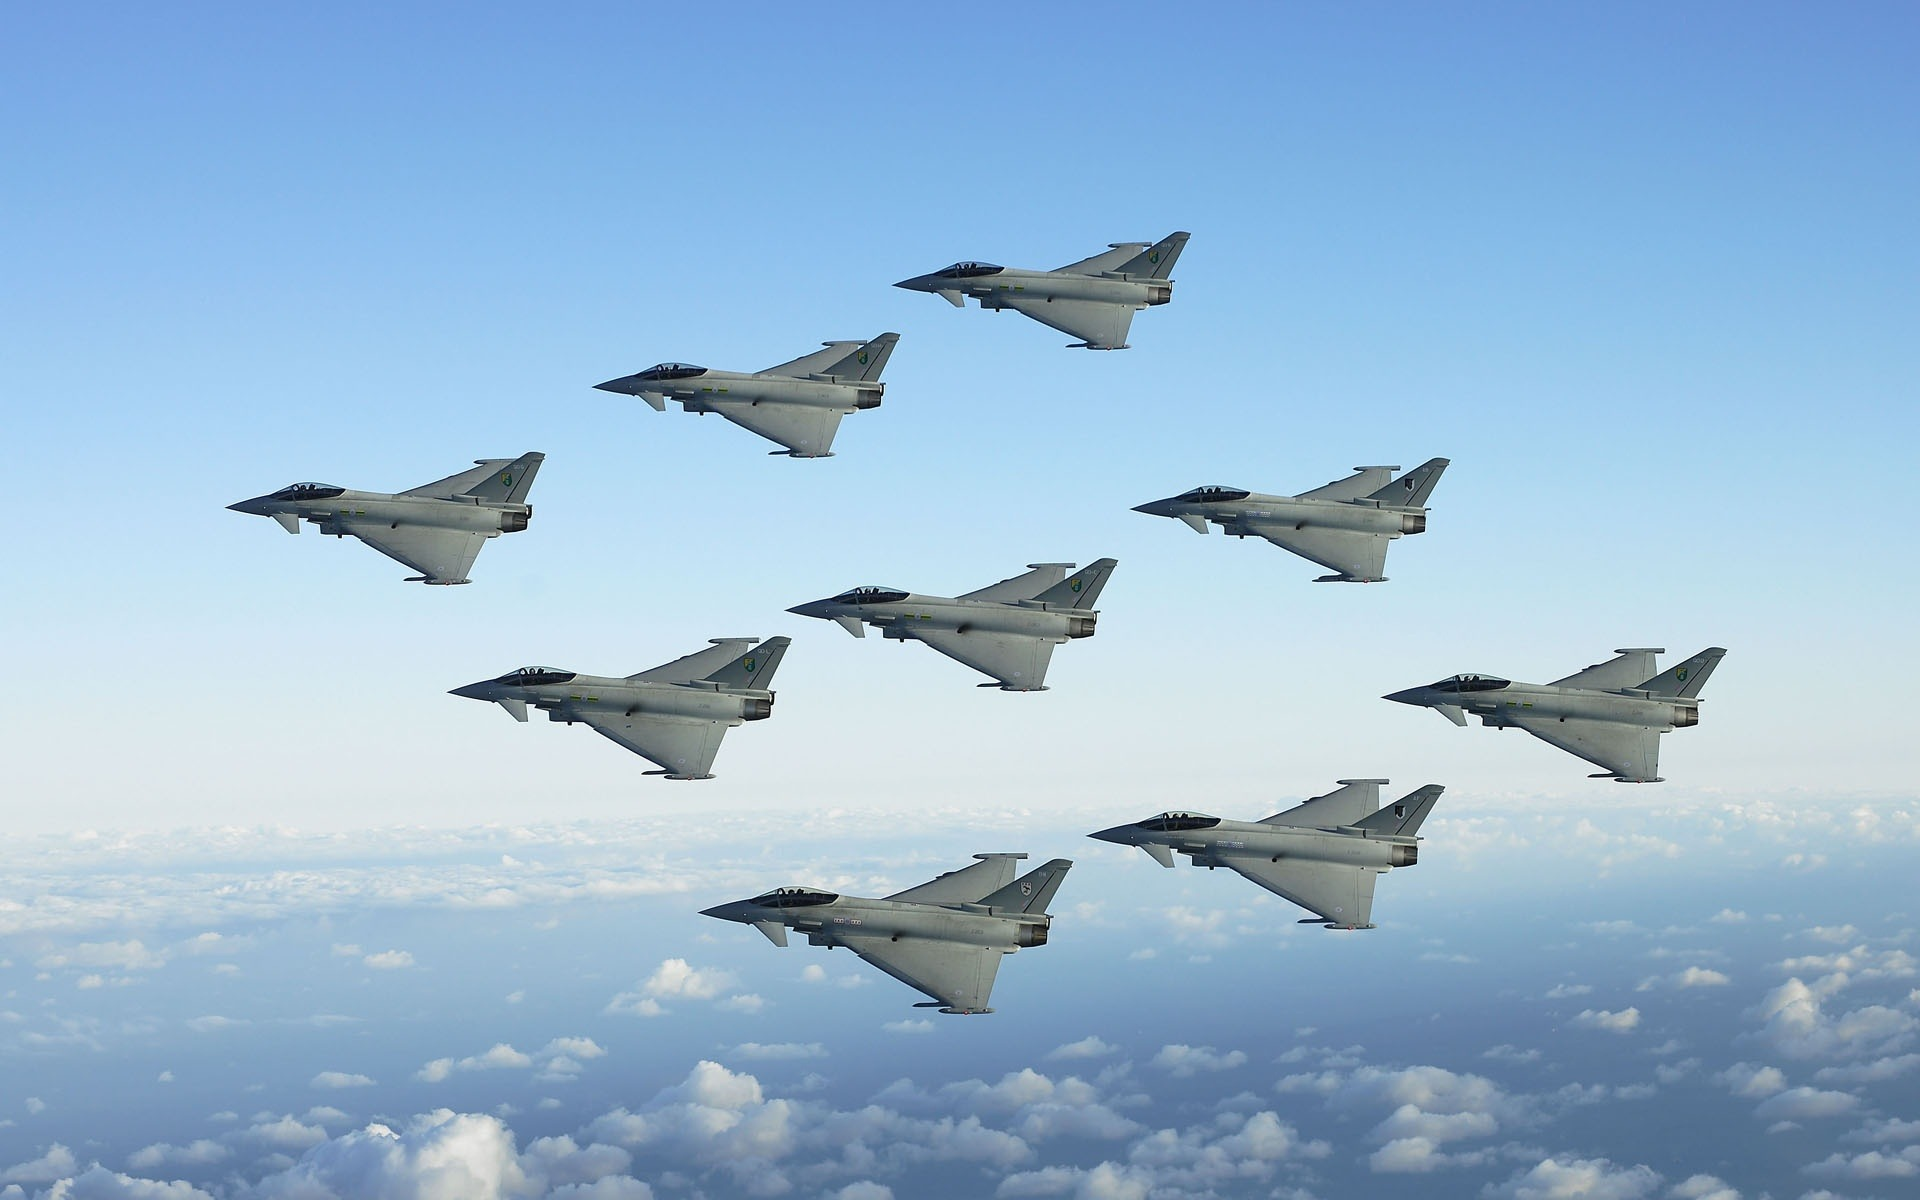 Military Fighter Jets 9641 Hd Wallpapers in Aircraft   Imagescicom 1920x1200